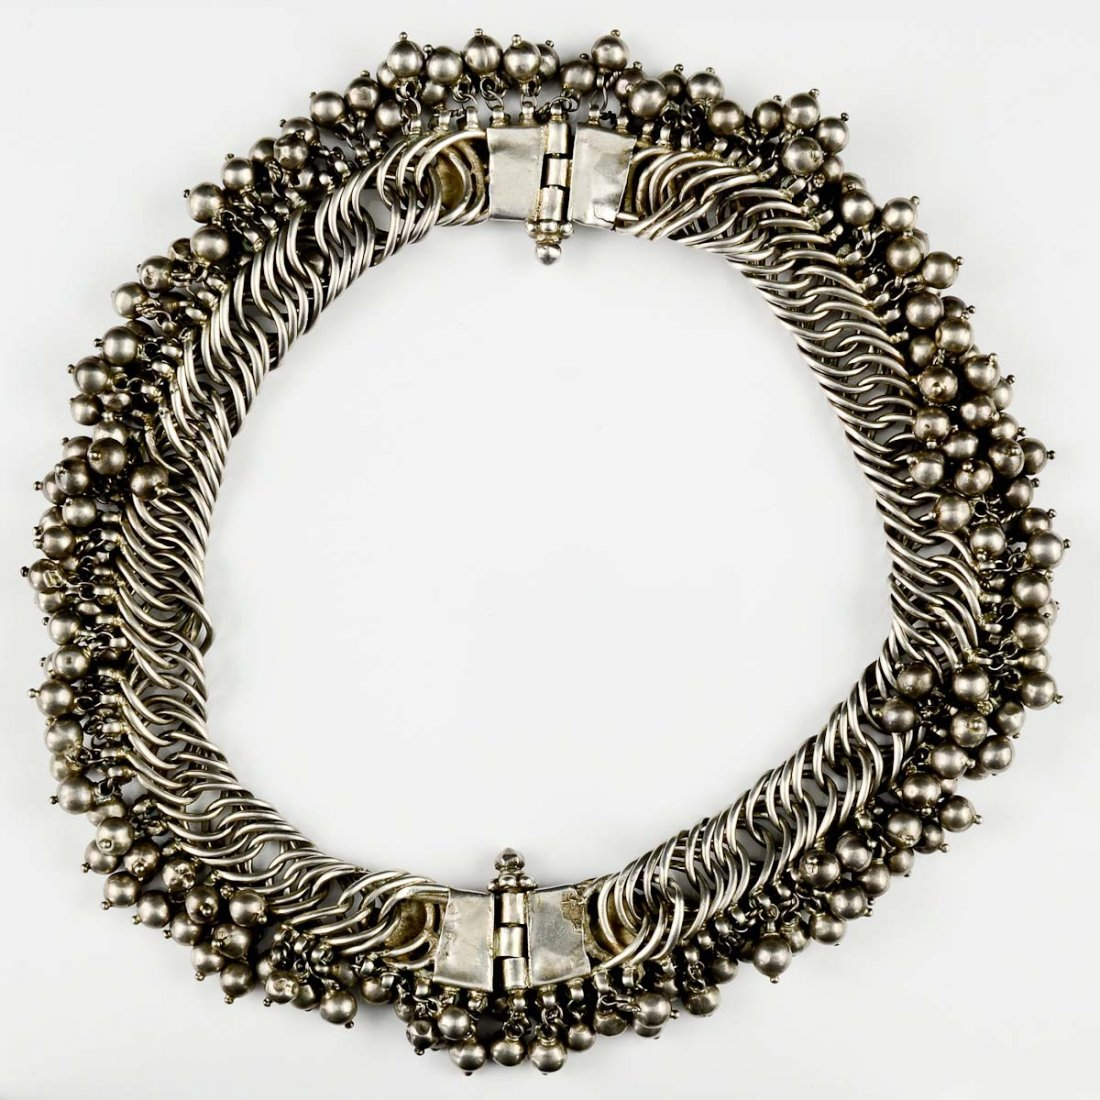 Tribal or Bedouin Silver bib necklace - 3